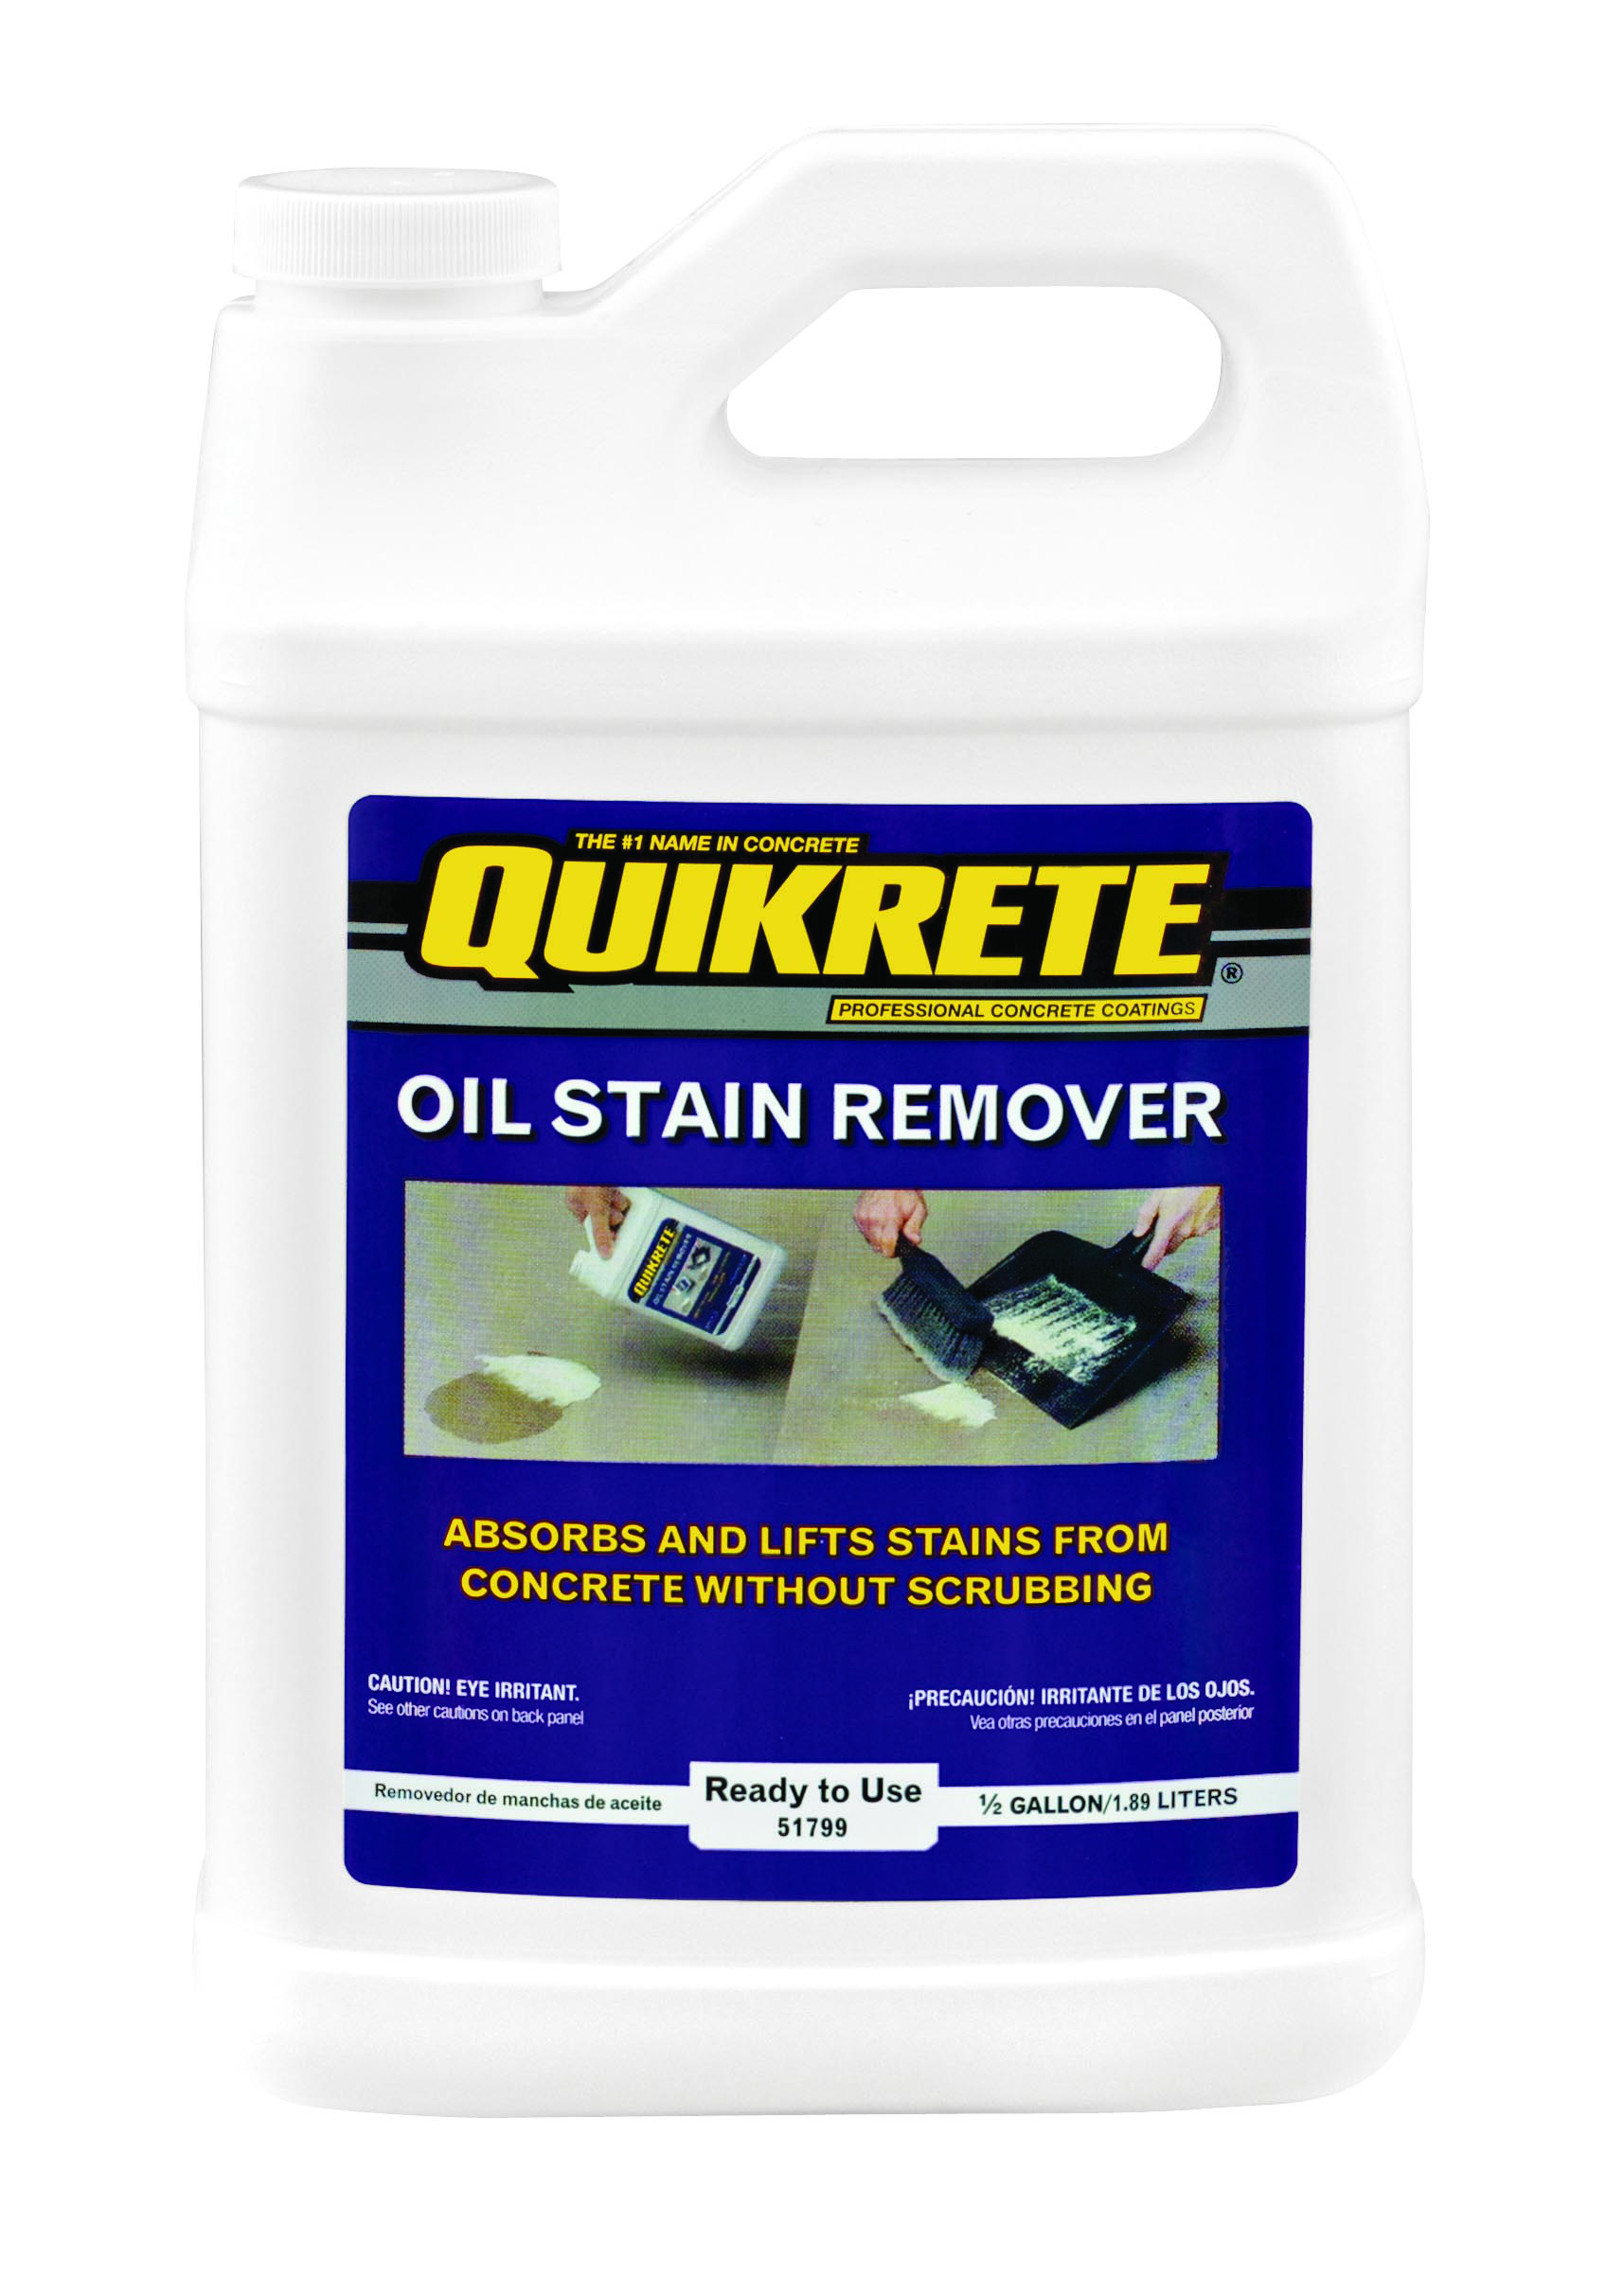 Oil stain remover keeps shop floors clean for Best degreaser for concrete